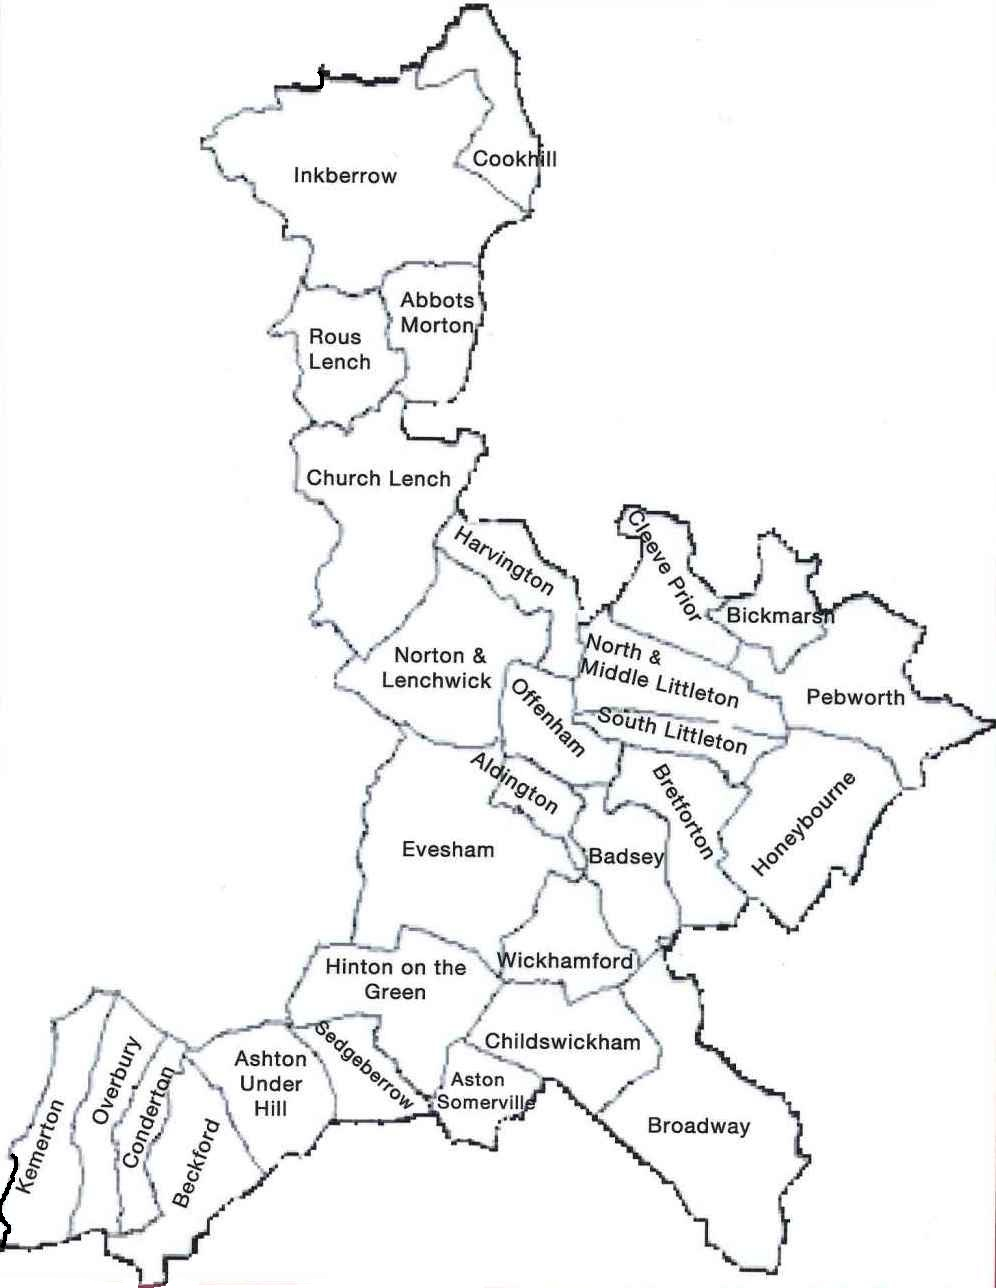 Map of the area served by Evesham Volunteer Centre